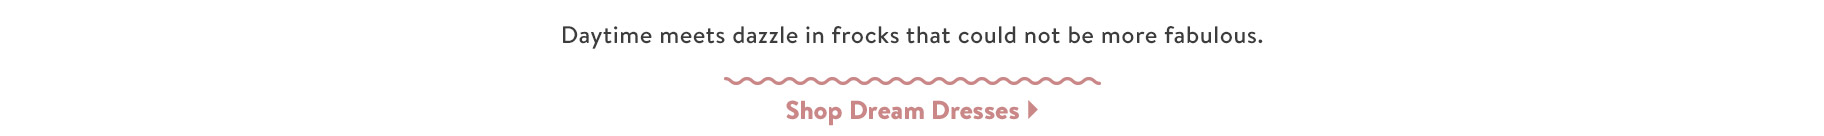 Daytime meets dazzle in frocks that could not be more fabulous. Shop Dream Dresses.